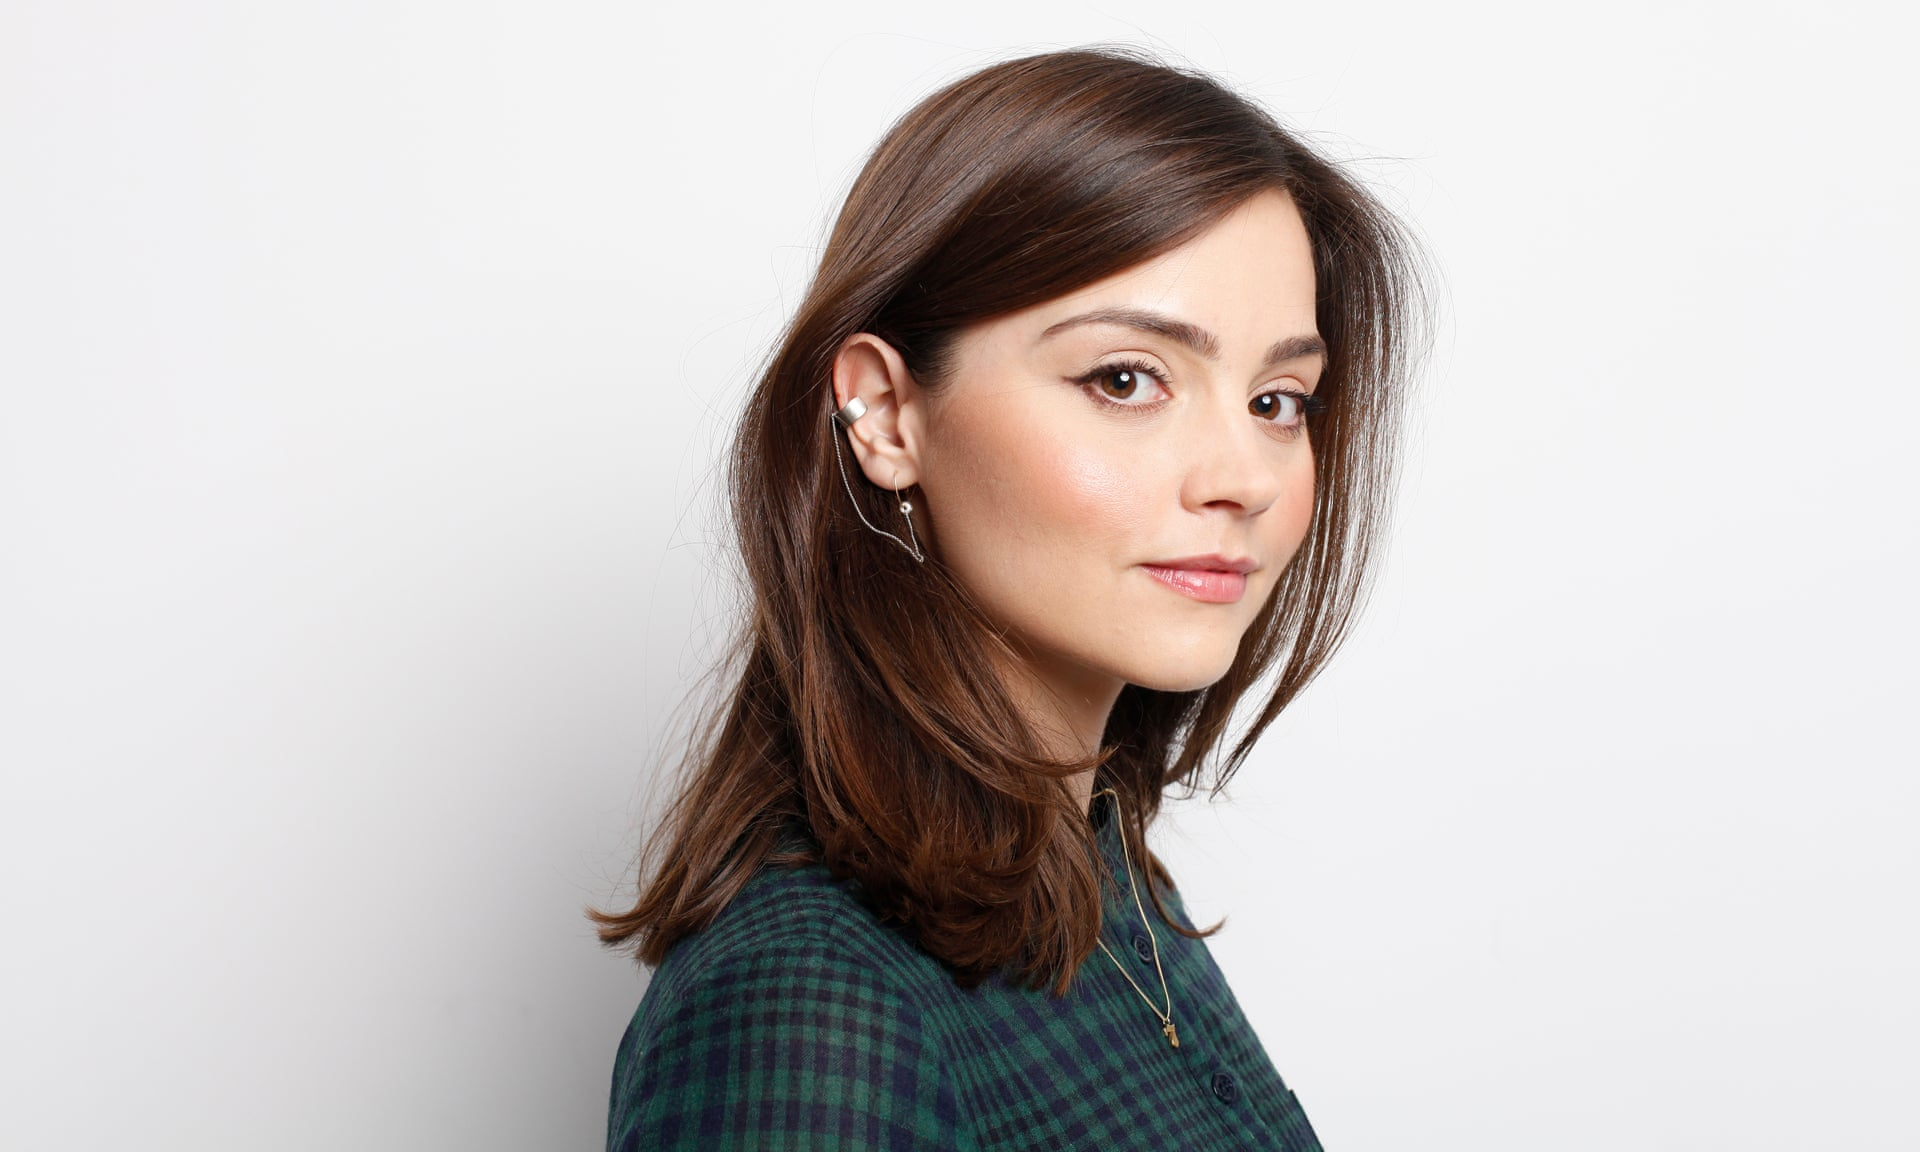 Jenna Coleman joins BBC One/Netflix crime thriller The Serpent